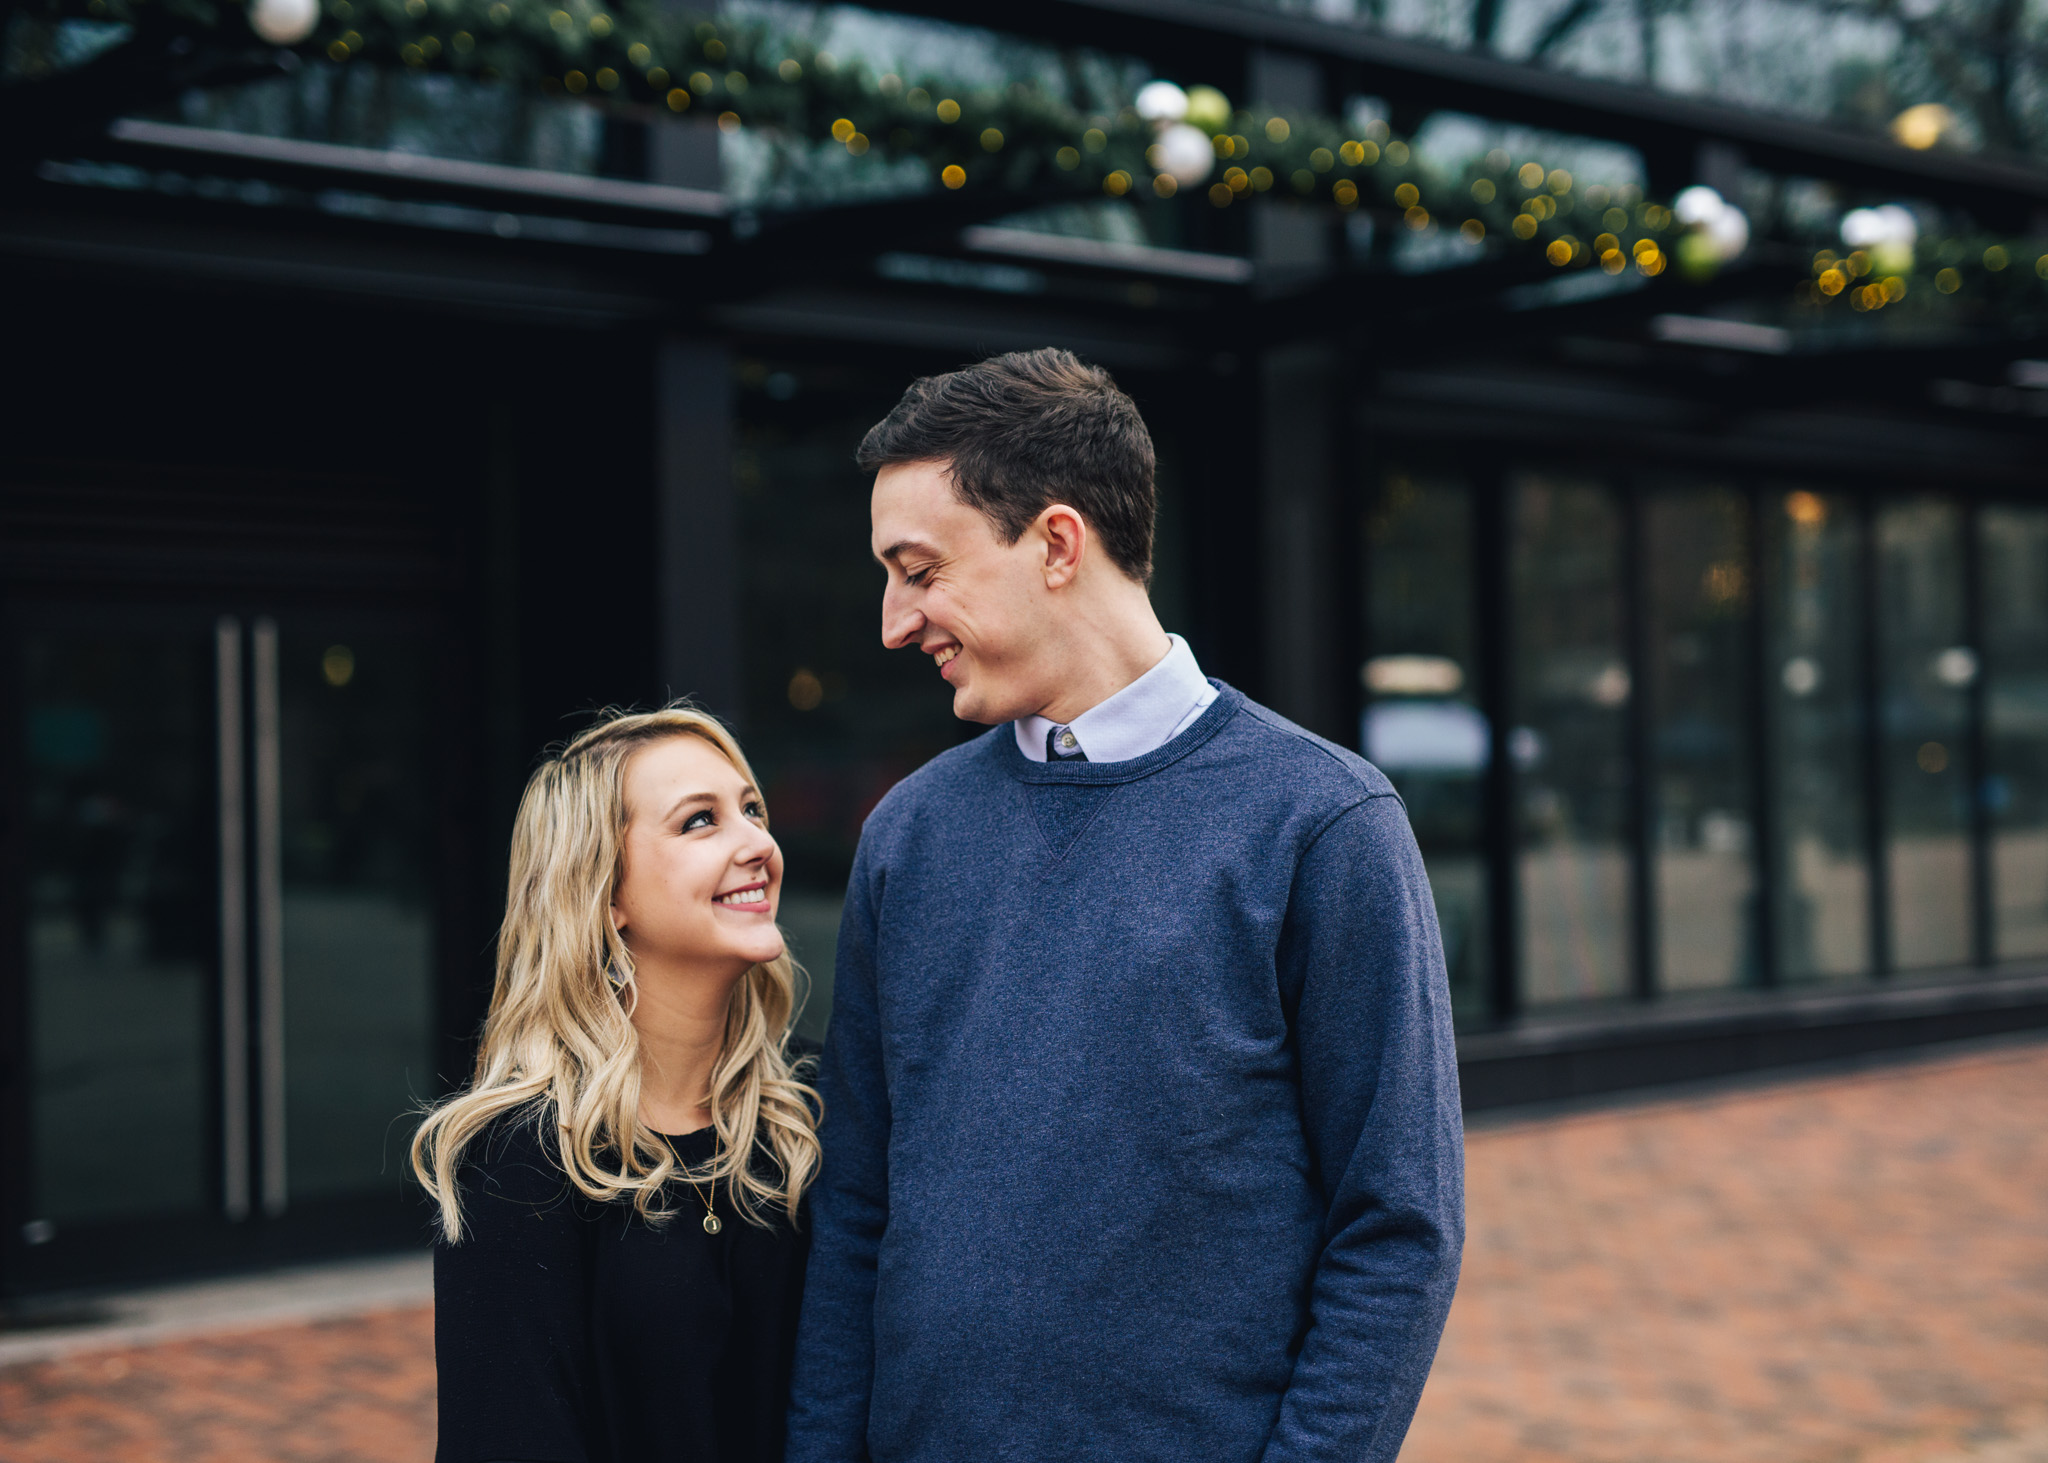 Seattle Pioneer Square Cozy Engagement Photos (1 of 14).jpg